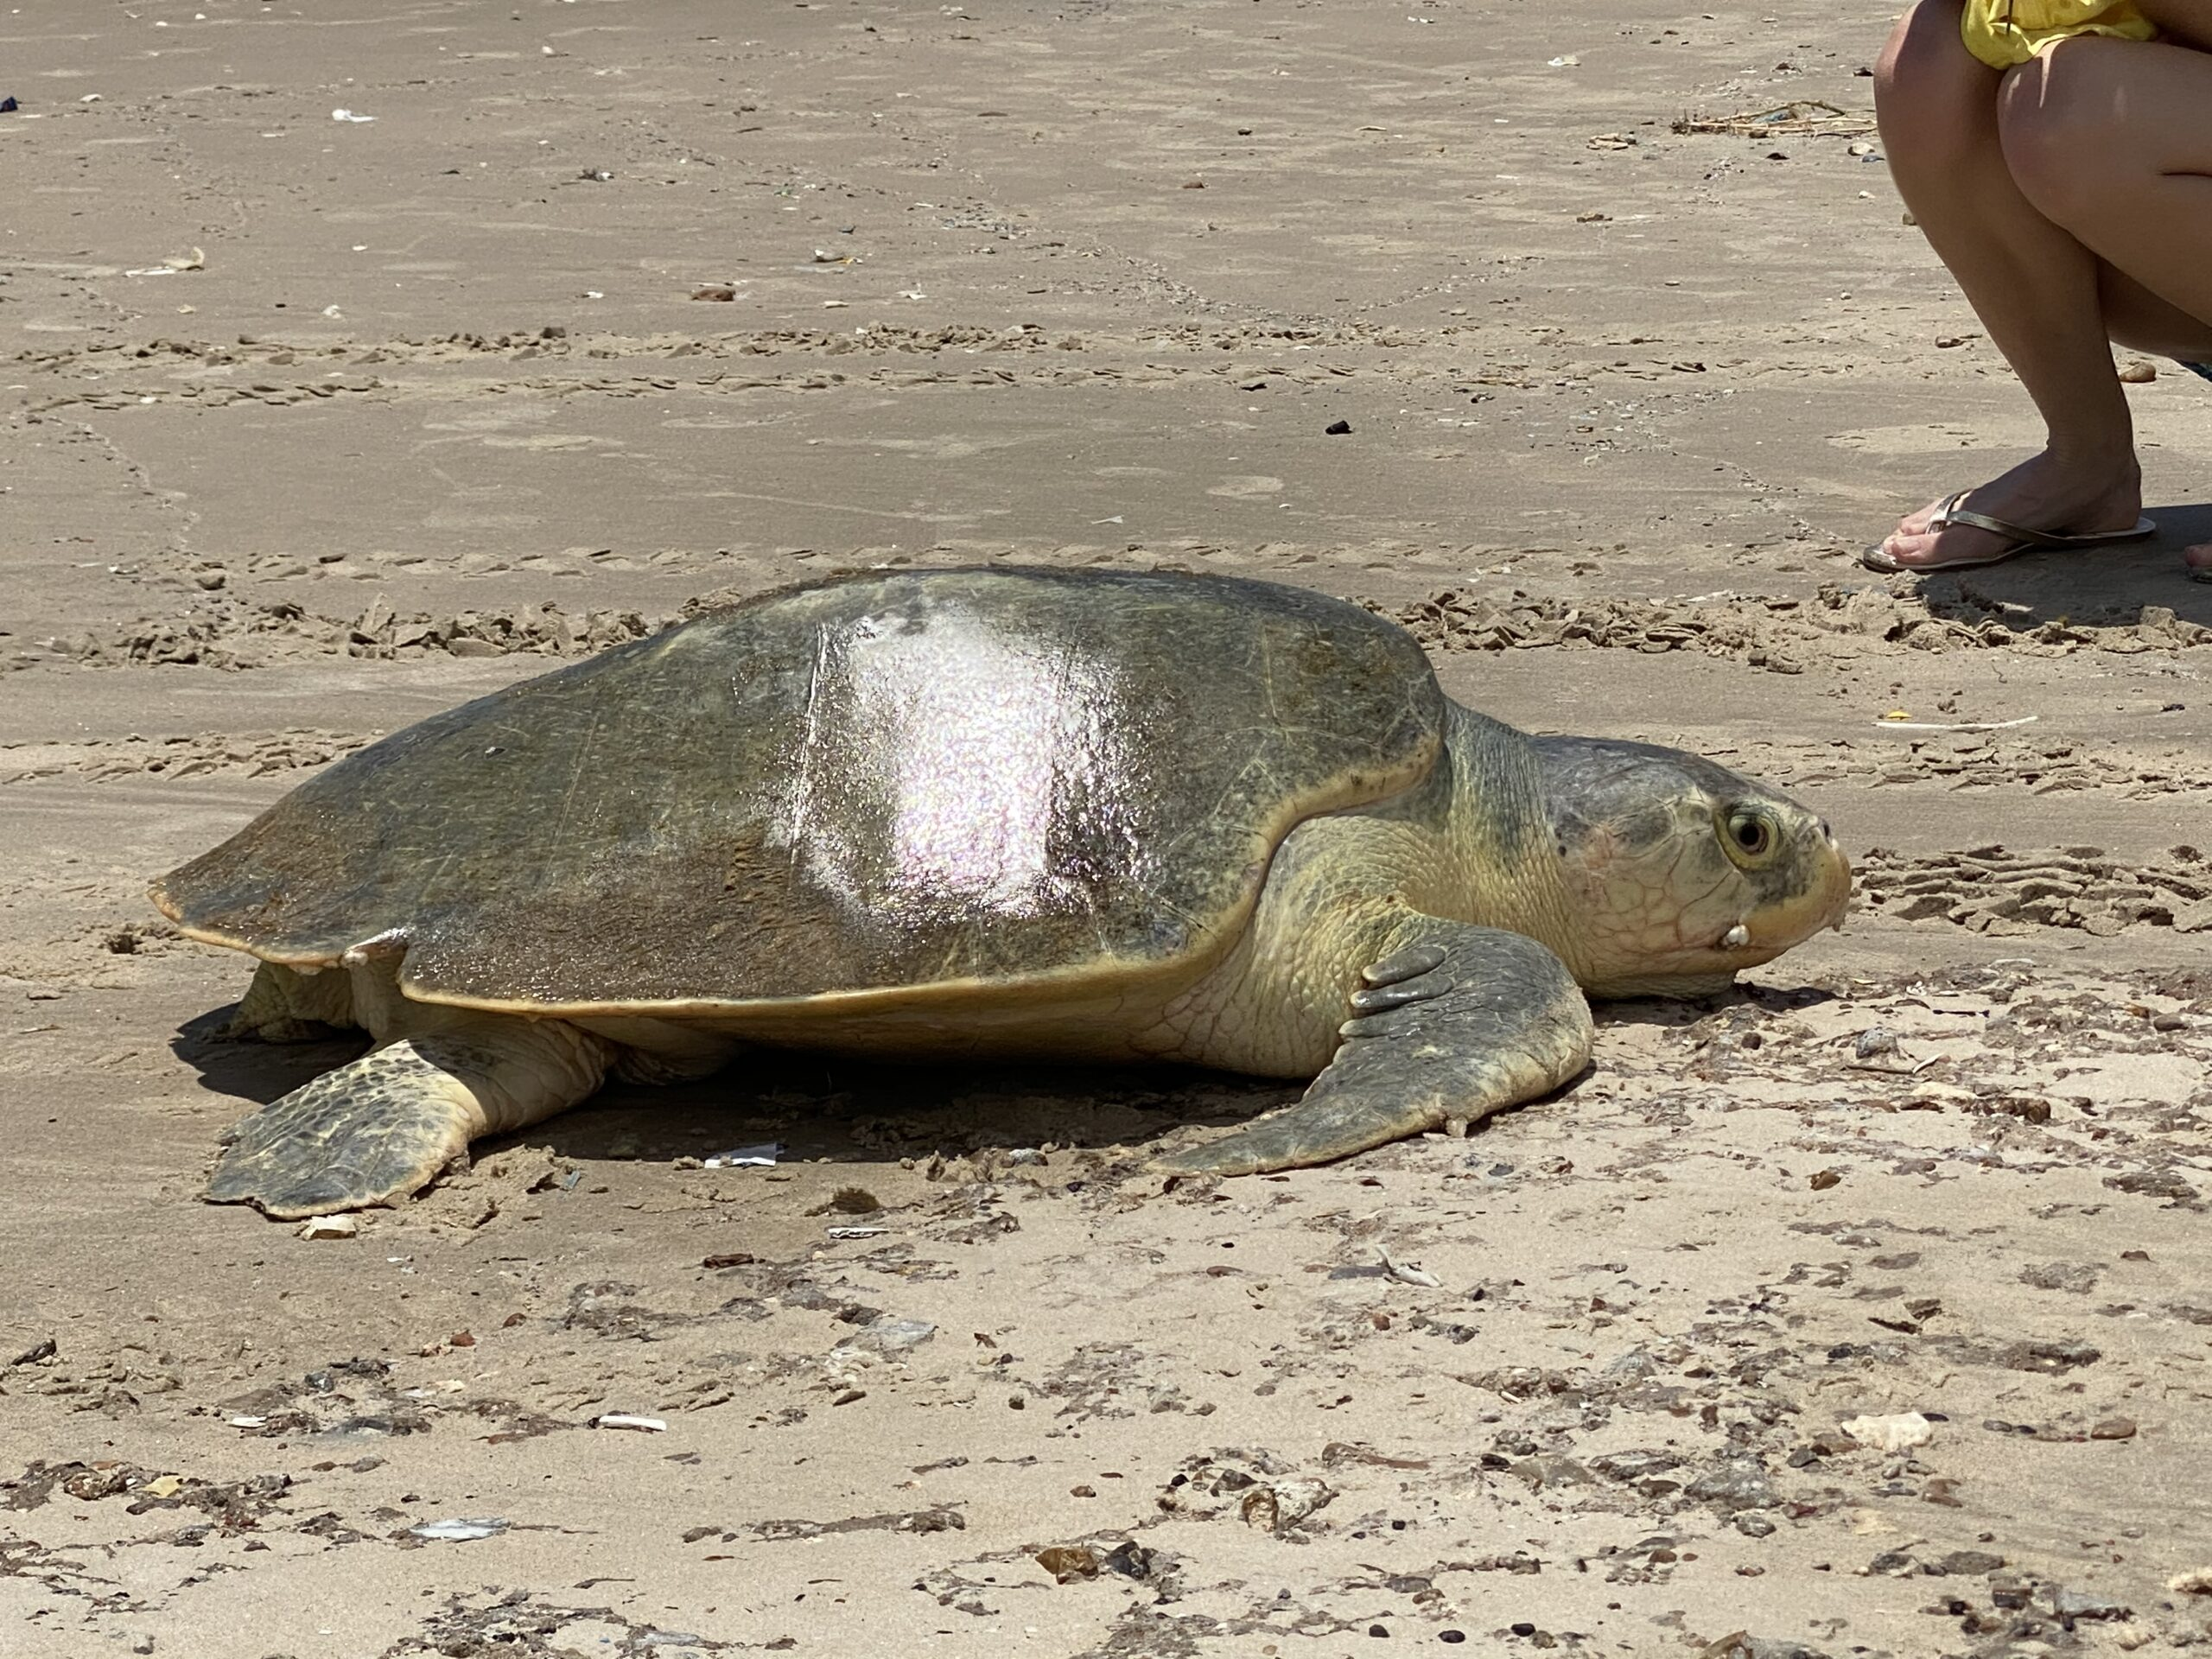 After Covid-19 Closures, Gulf Beaches Reopen as Sea Turtles Nest